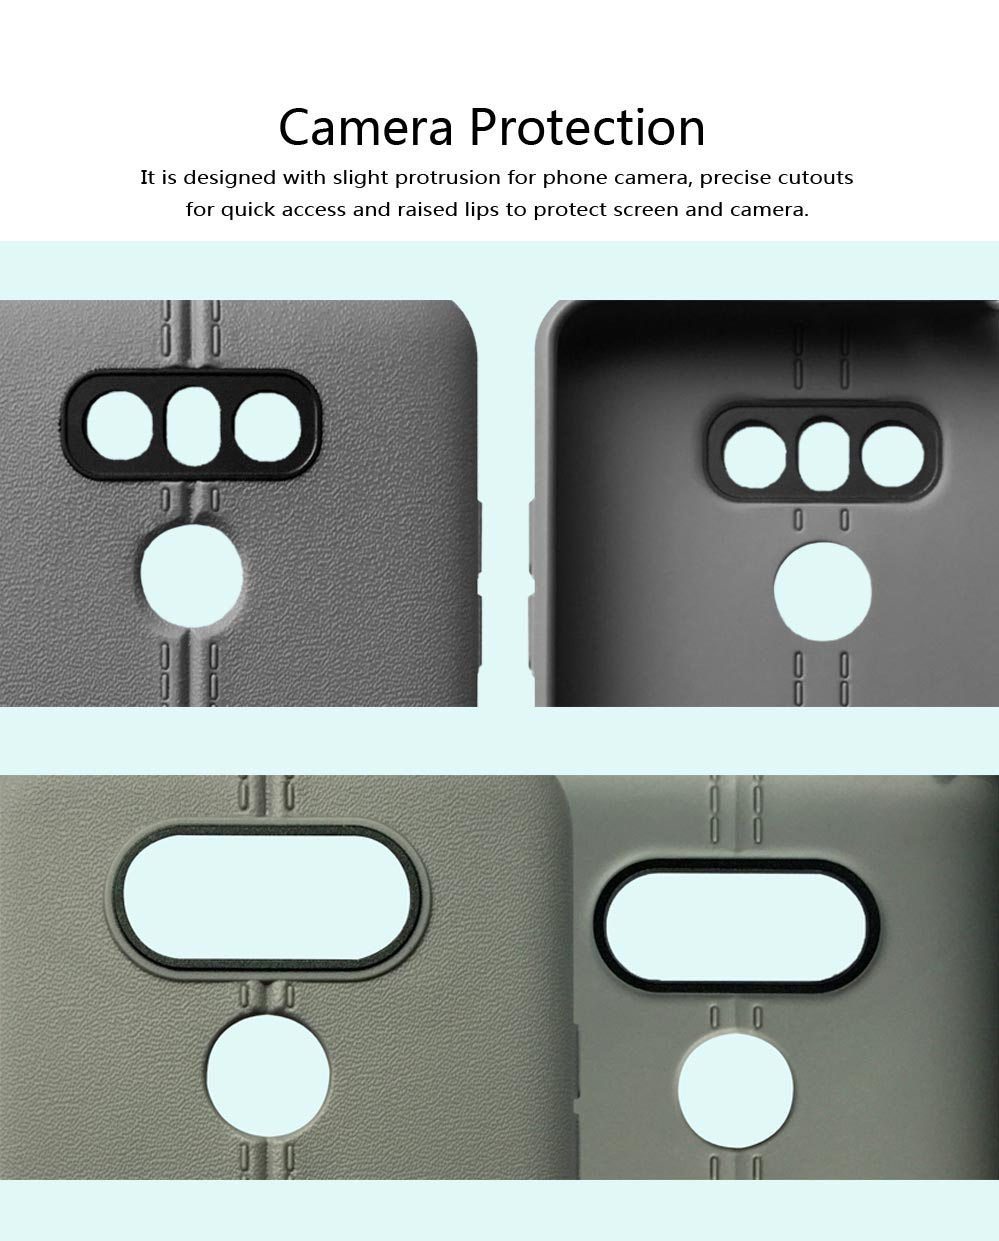 Double Line Phone Protector Case for LG G4 G6, Solid Color Anti-Fall Phone Cover, Minimalist TPU Back Cover 4